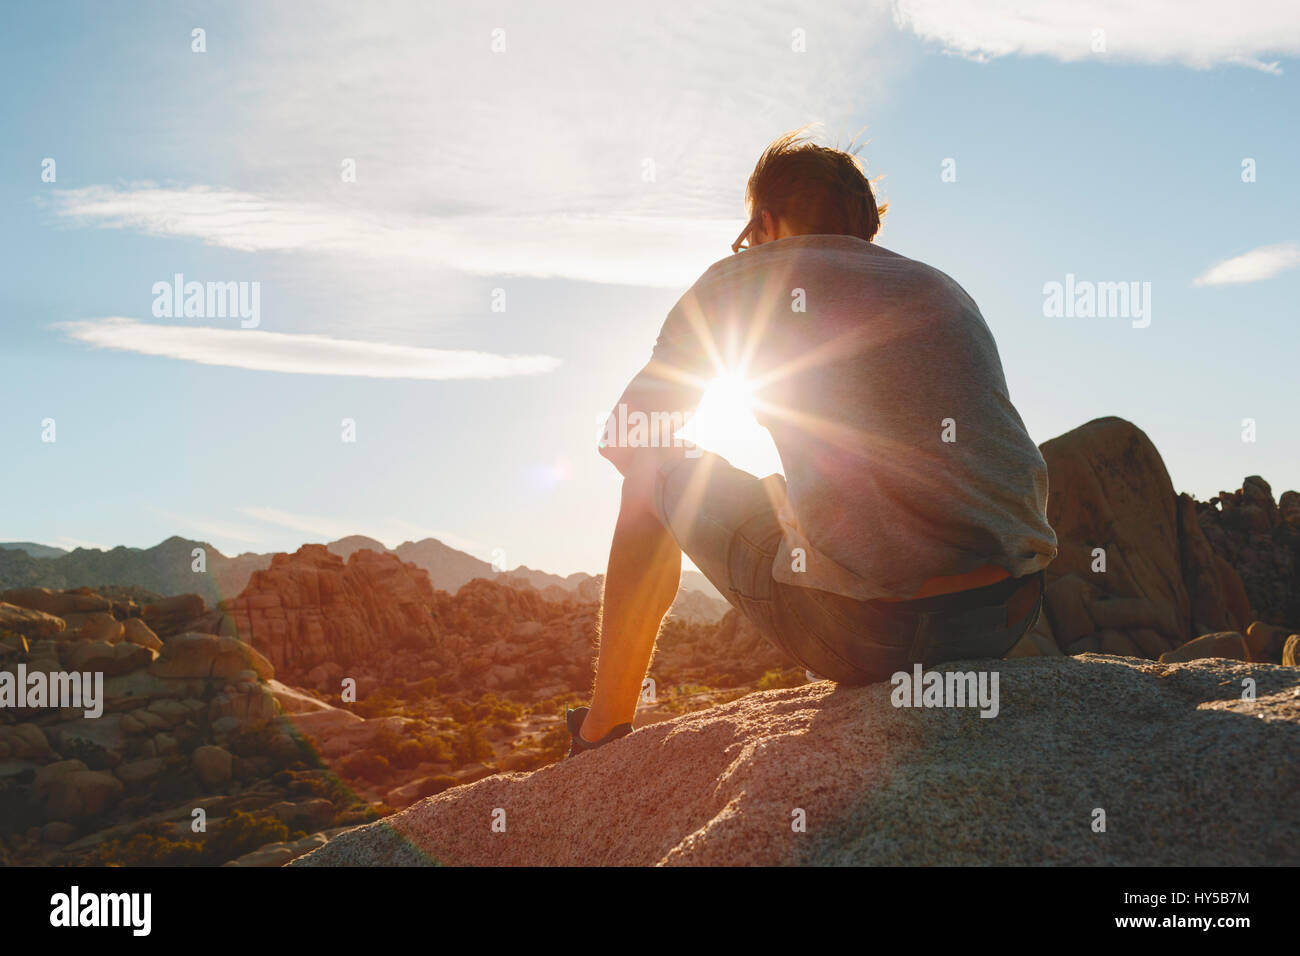 États-unis, Californie, Joshua Tree National Park, man sitting on rock et regardant le coucher du soleil Photo Stock